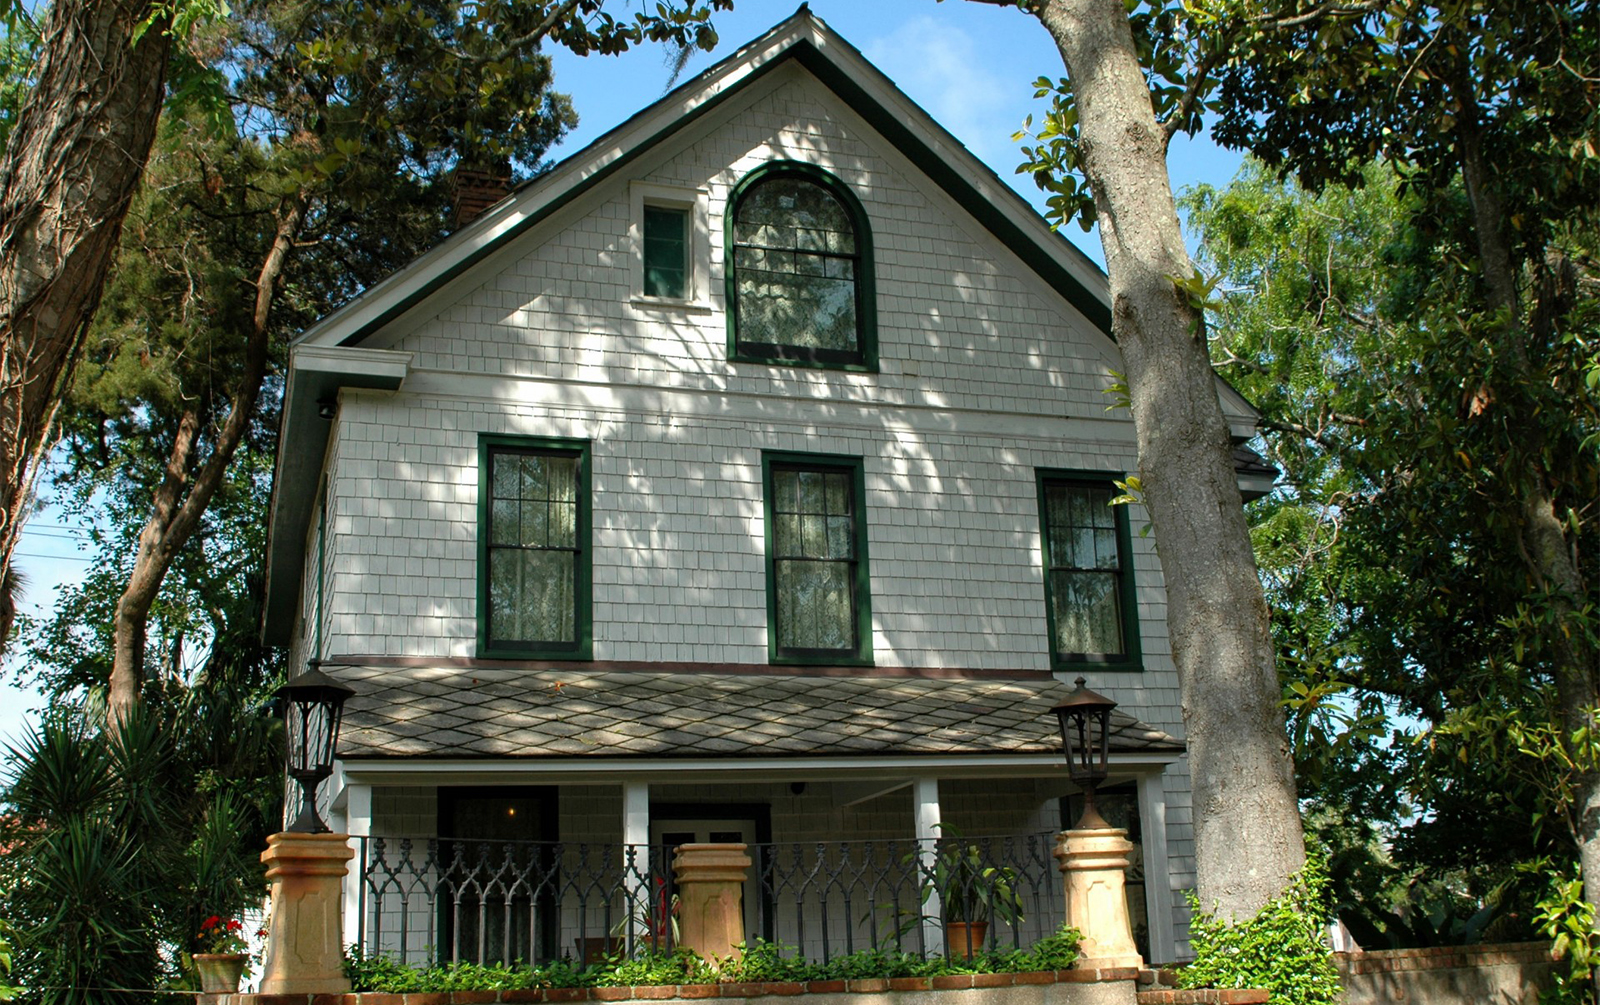 Owning an Old House: Charming Love Affair or Expensive Money Pit?